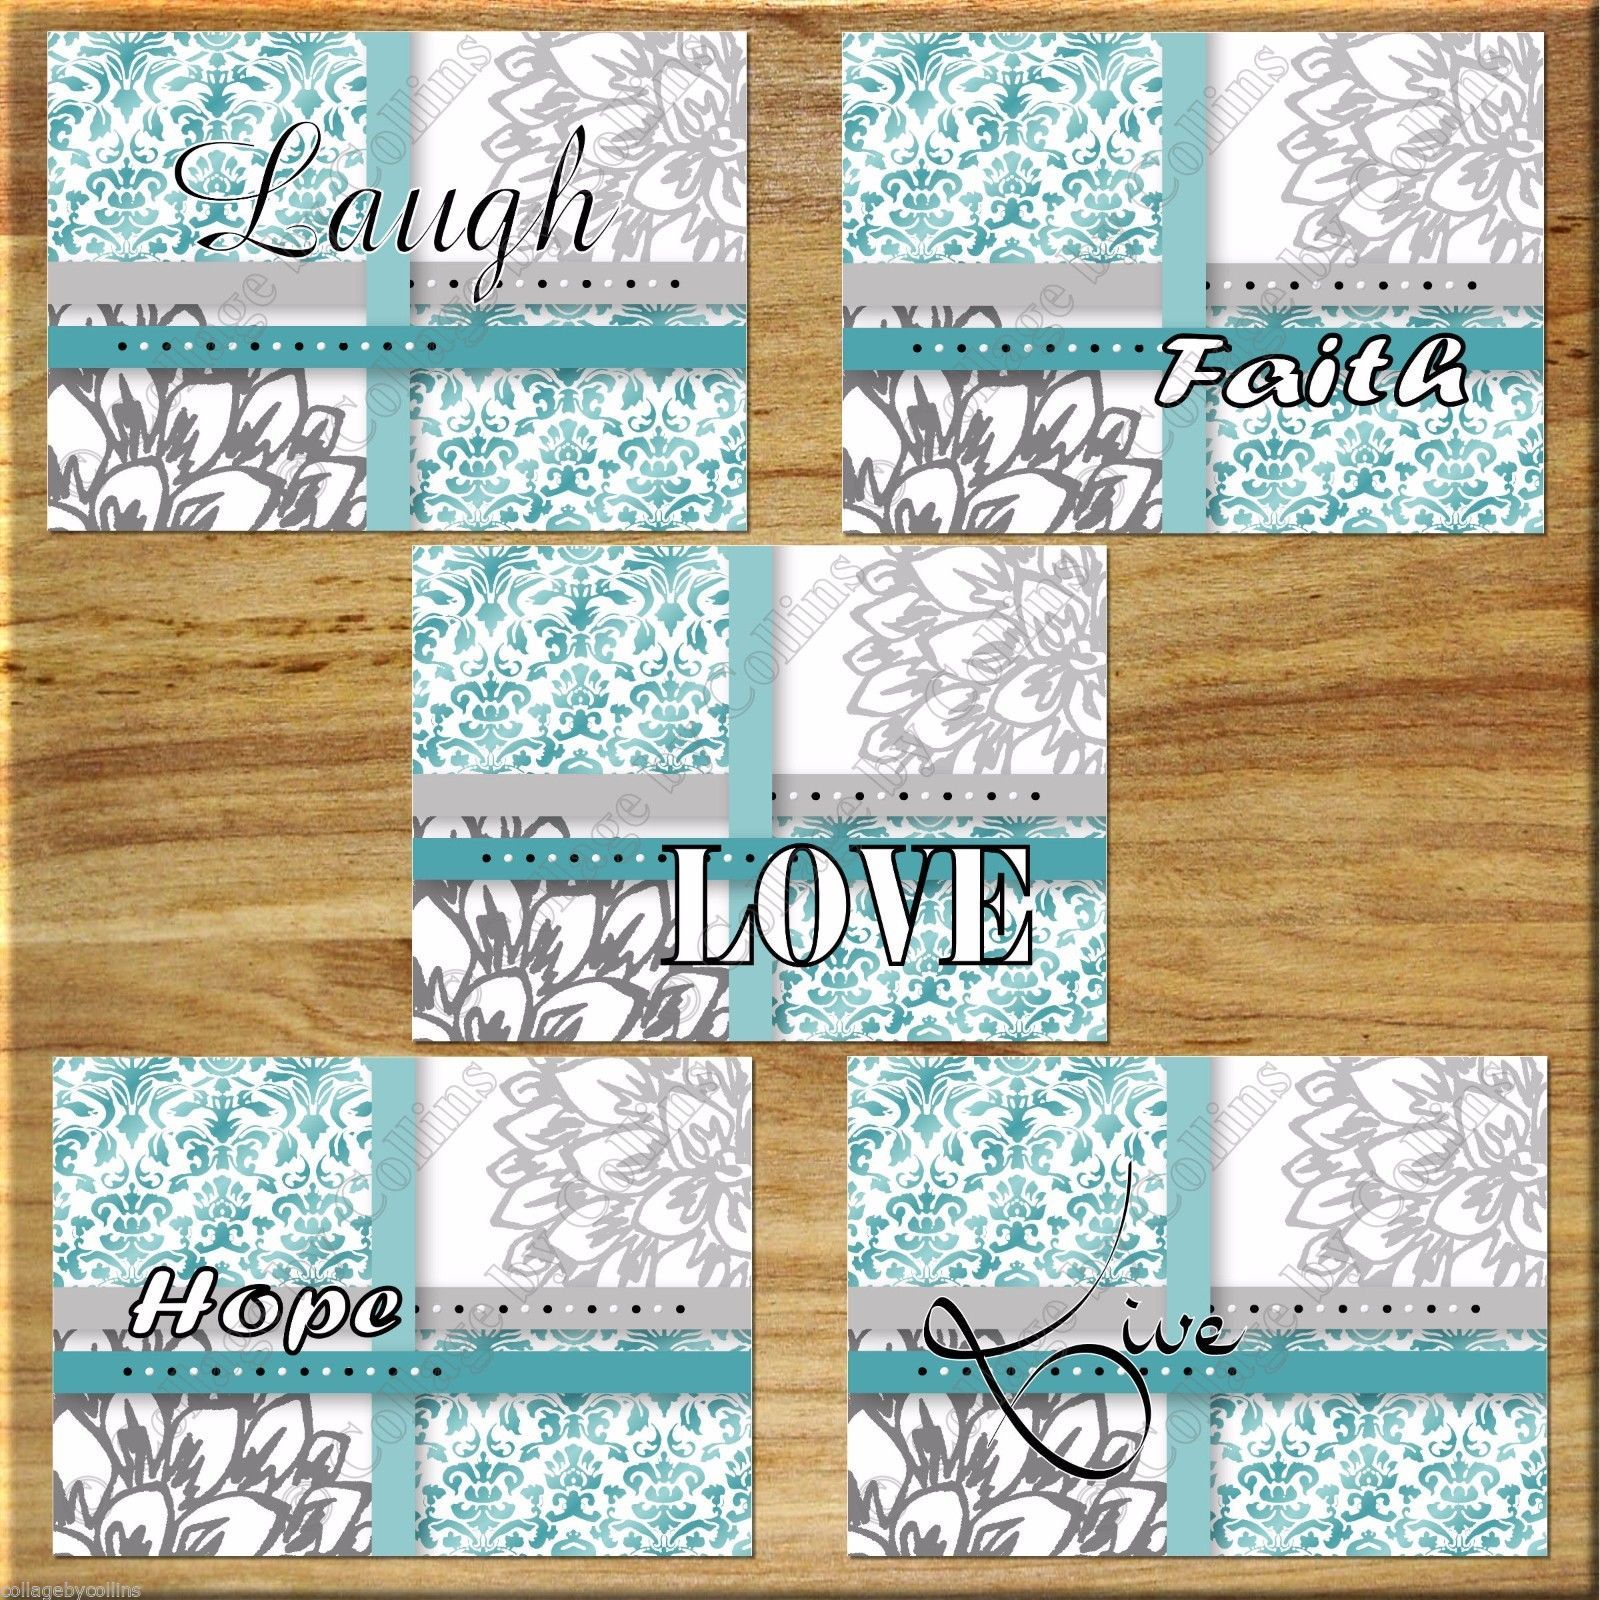 Primary image for Teal Aqua Gray Floral Wall Art Prints Quotes Flower Damask Faith Hope Love Laugh